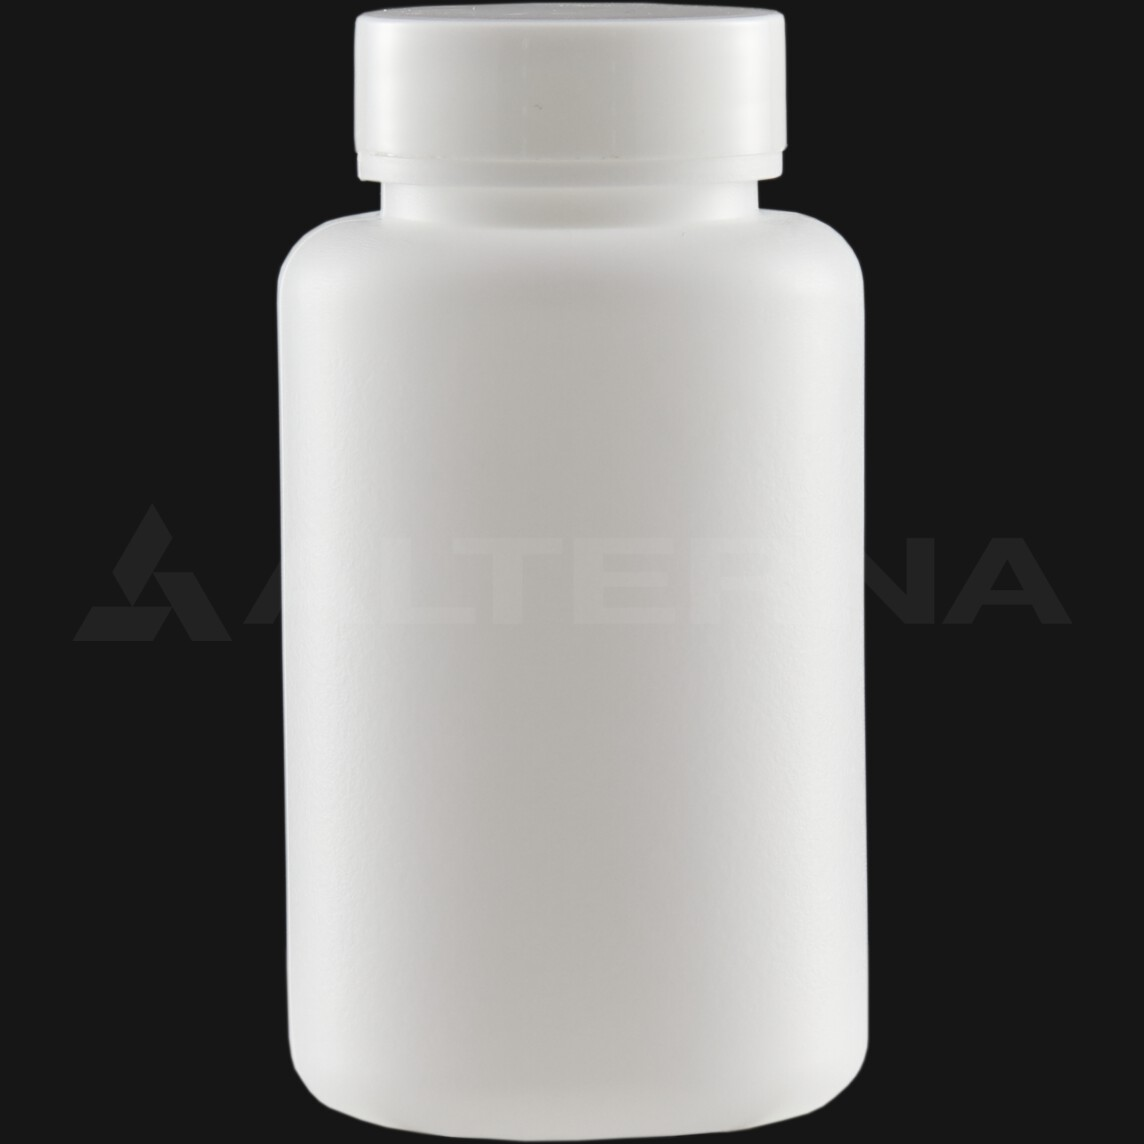 150 ml HDPE Pill Bottle with 38 mm Alu. Foil Seal Cap